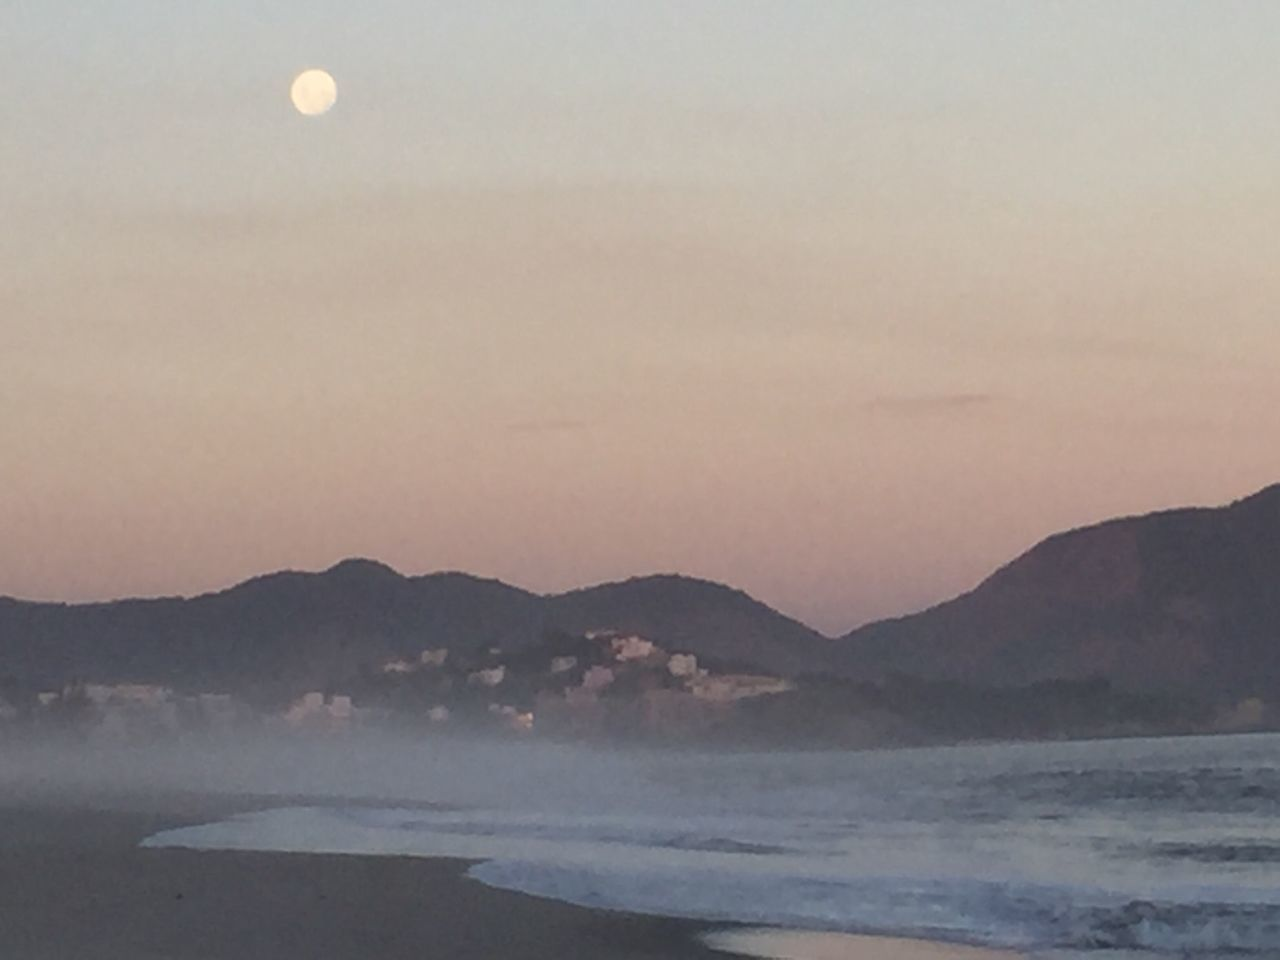 beauty in nature, nature, scenics, sunset, tranquility, sea, mountain, tranquil scene, moon, water, no people, outdoors, sky, mountain range, clear sky, beach, wave, day